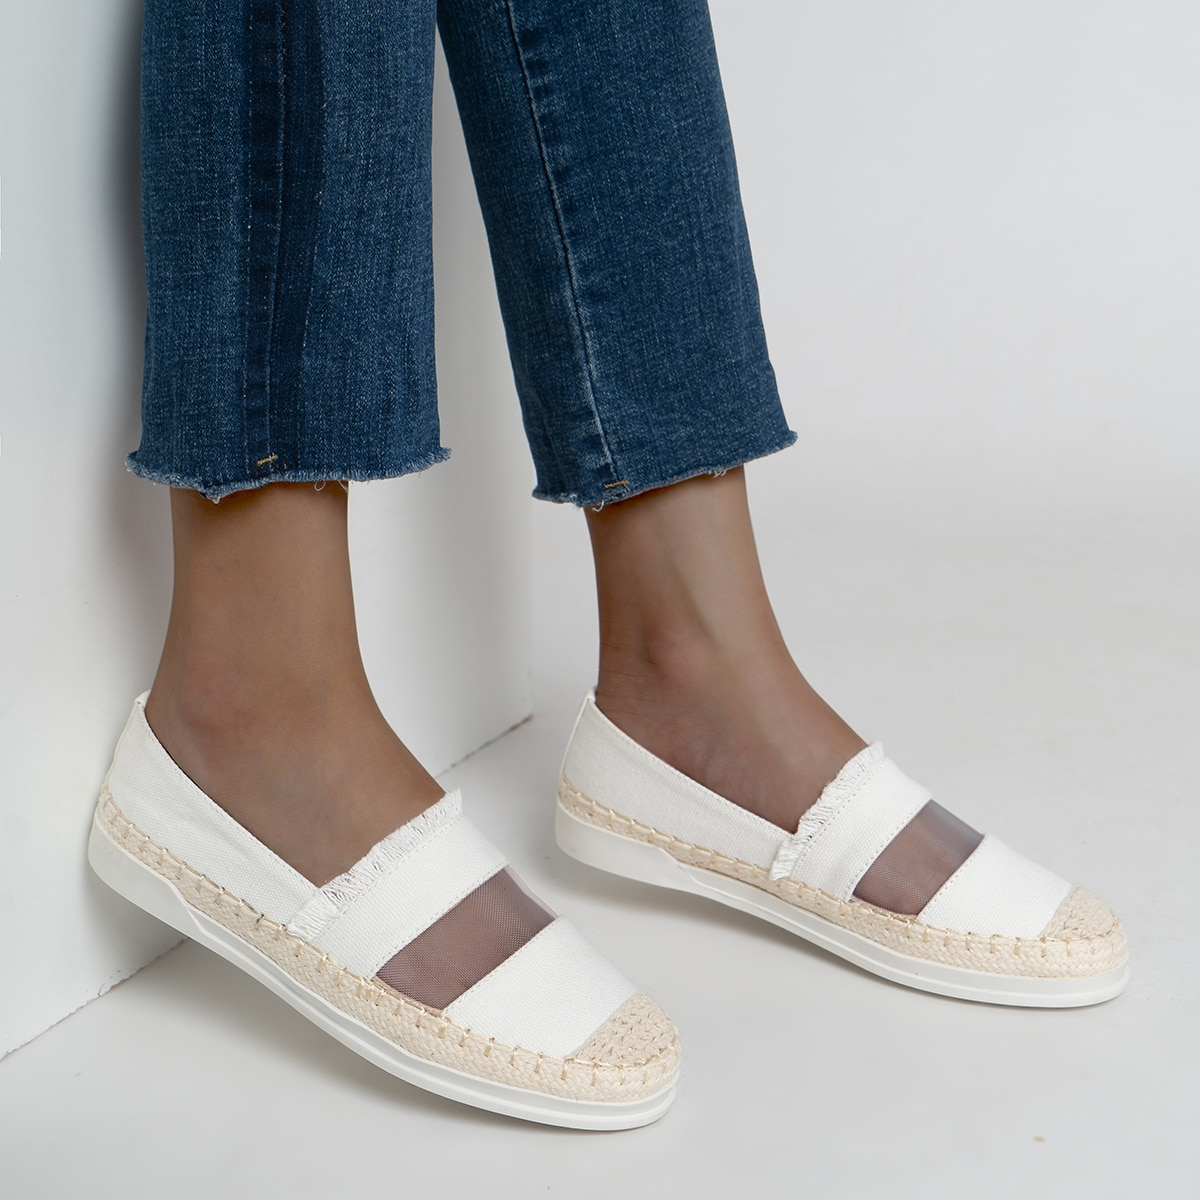 Fringe Trim Flats, SHEIN  - buy with discount